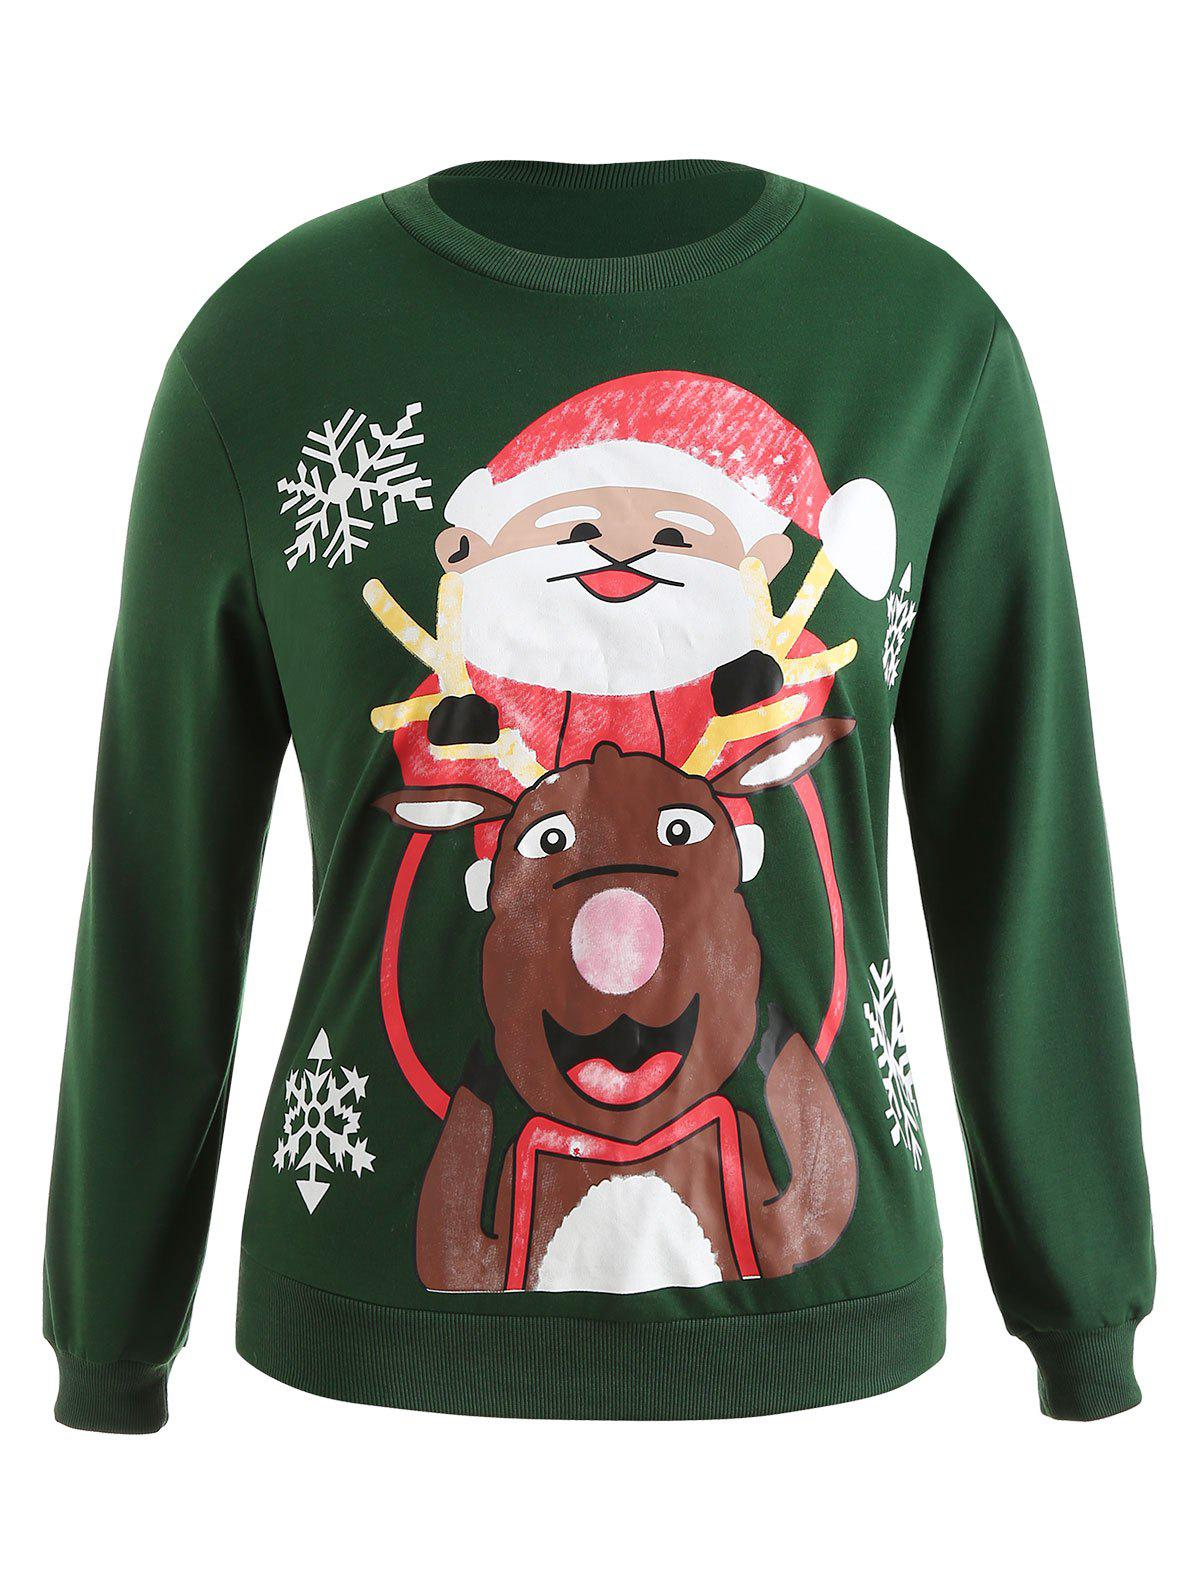 Plus Size Pullover Christmas Graphic Sweatshirt